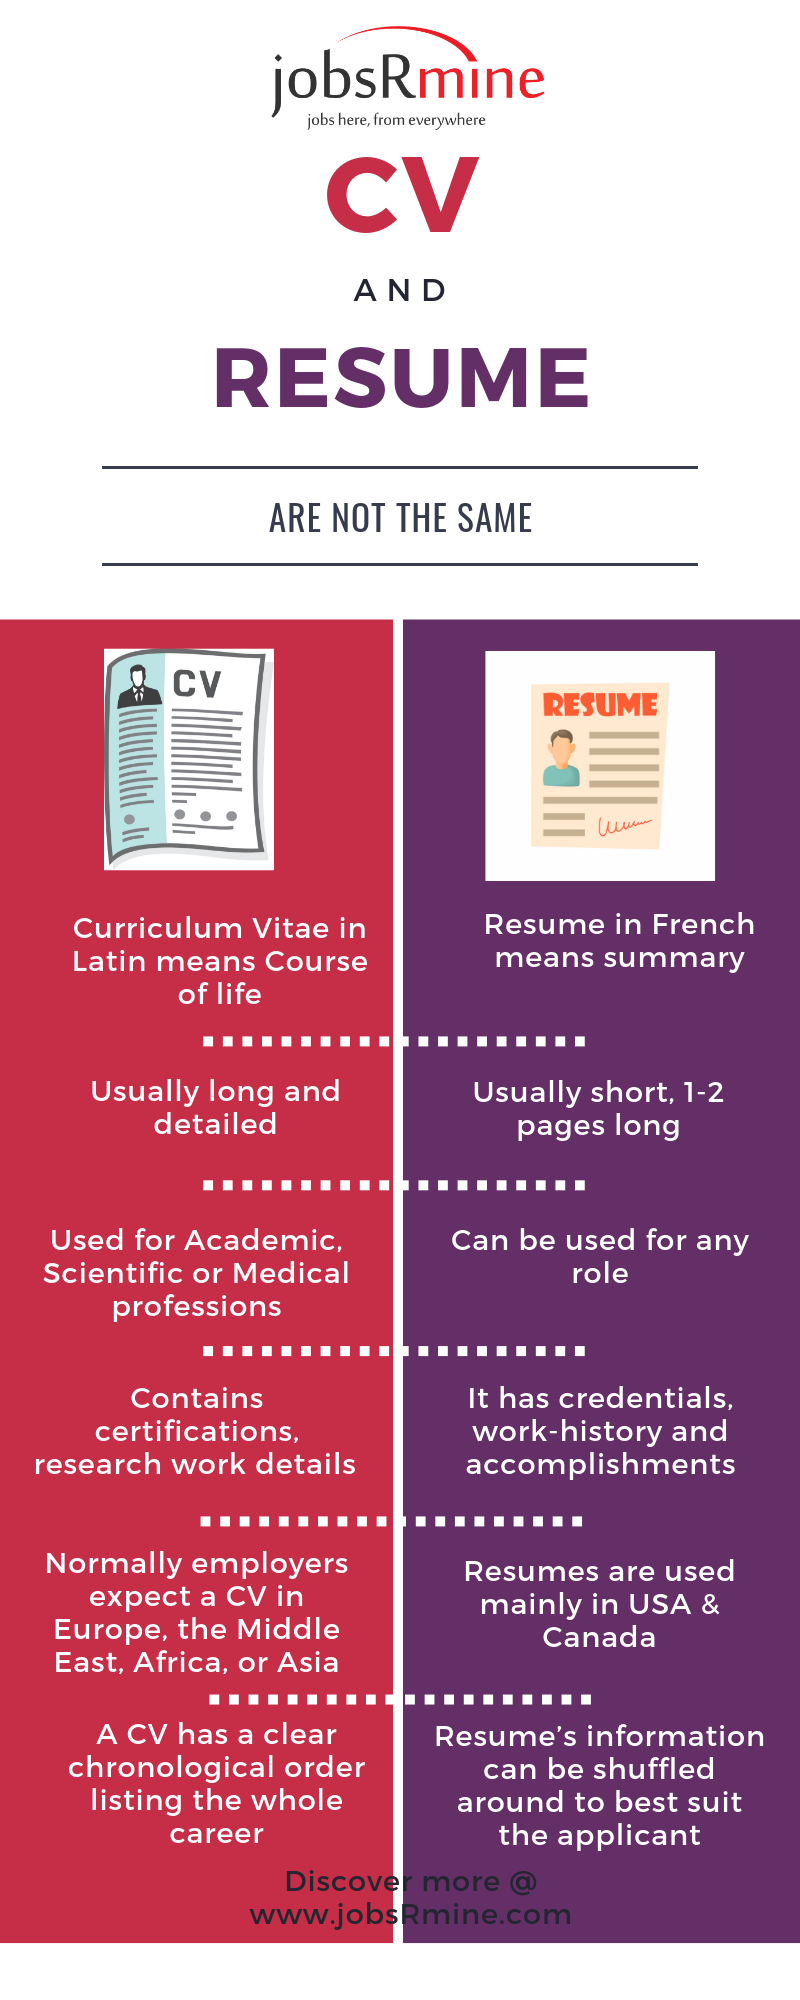 Lists the basic difference betwen a CV and resume and when